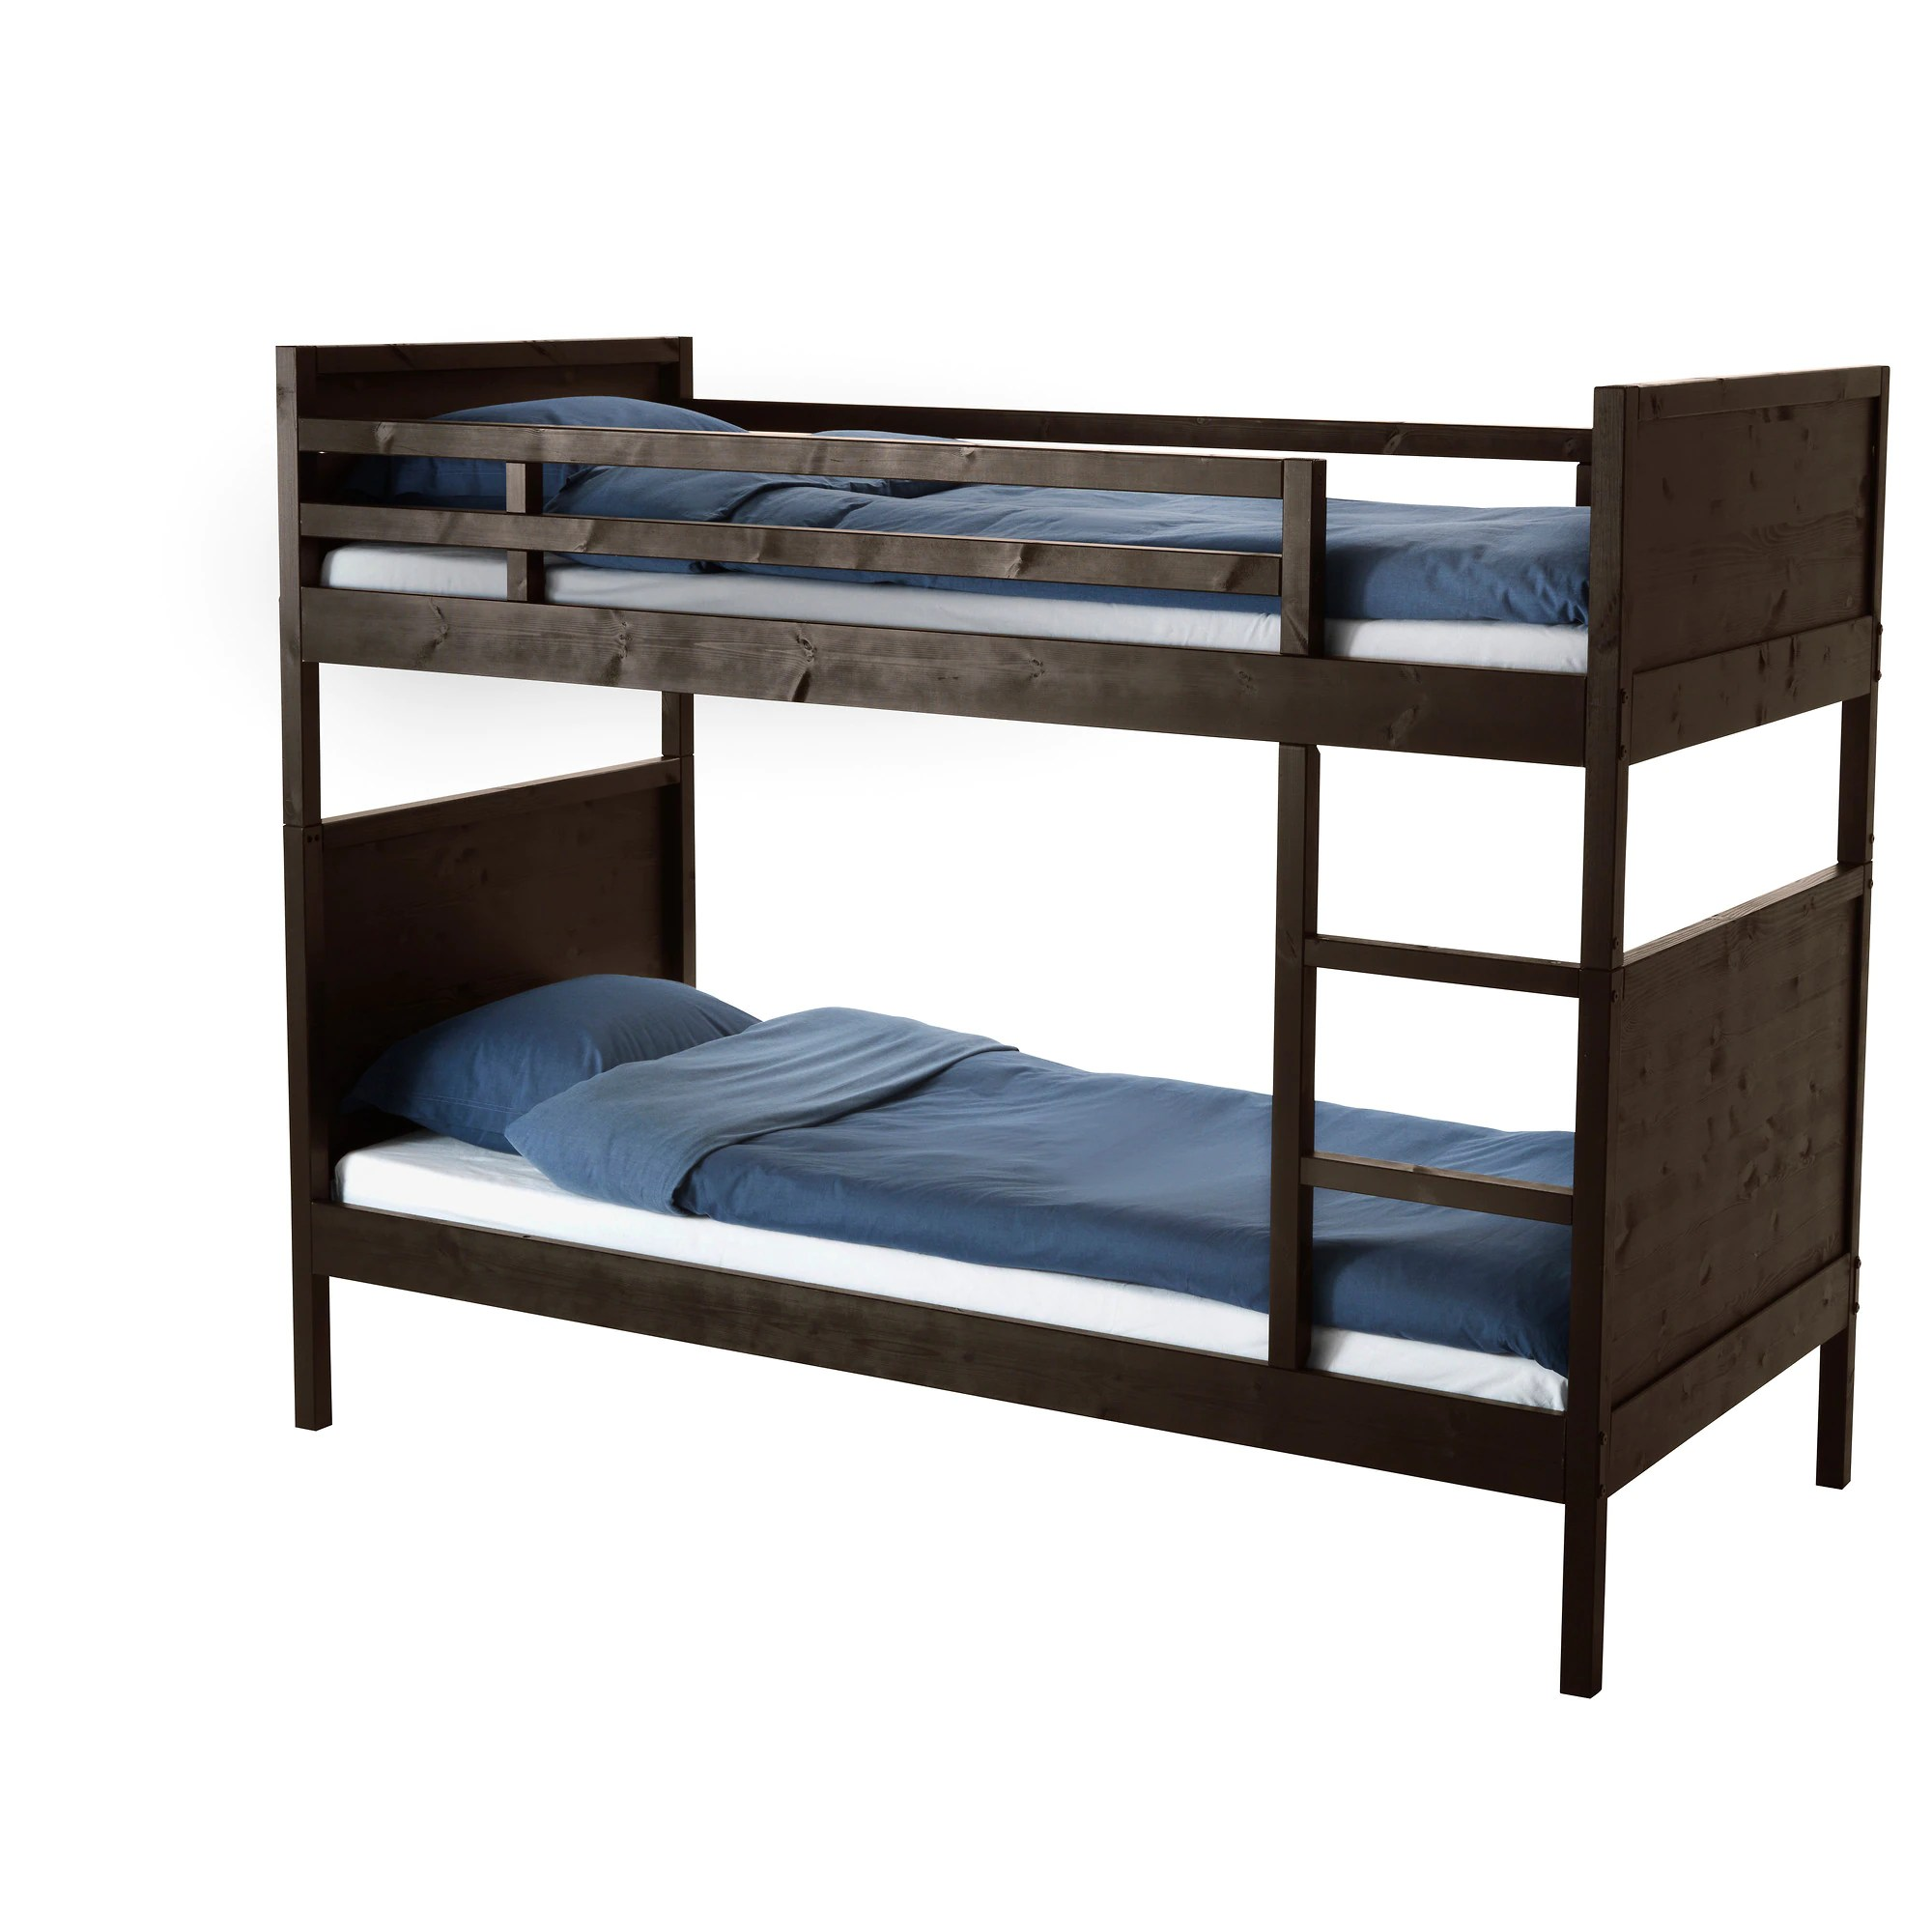 Stackable Twin Beds Norddal Bunk Bed Frame Black Brown